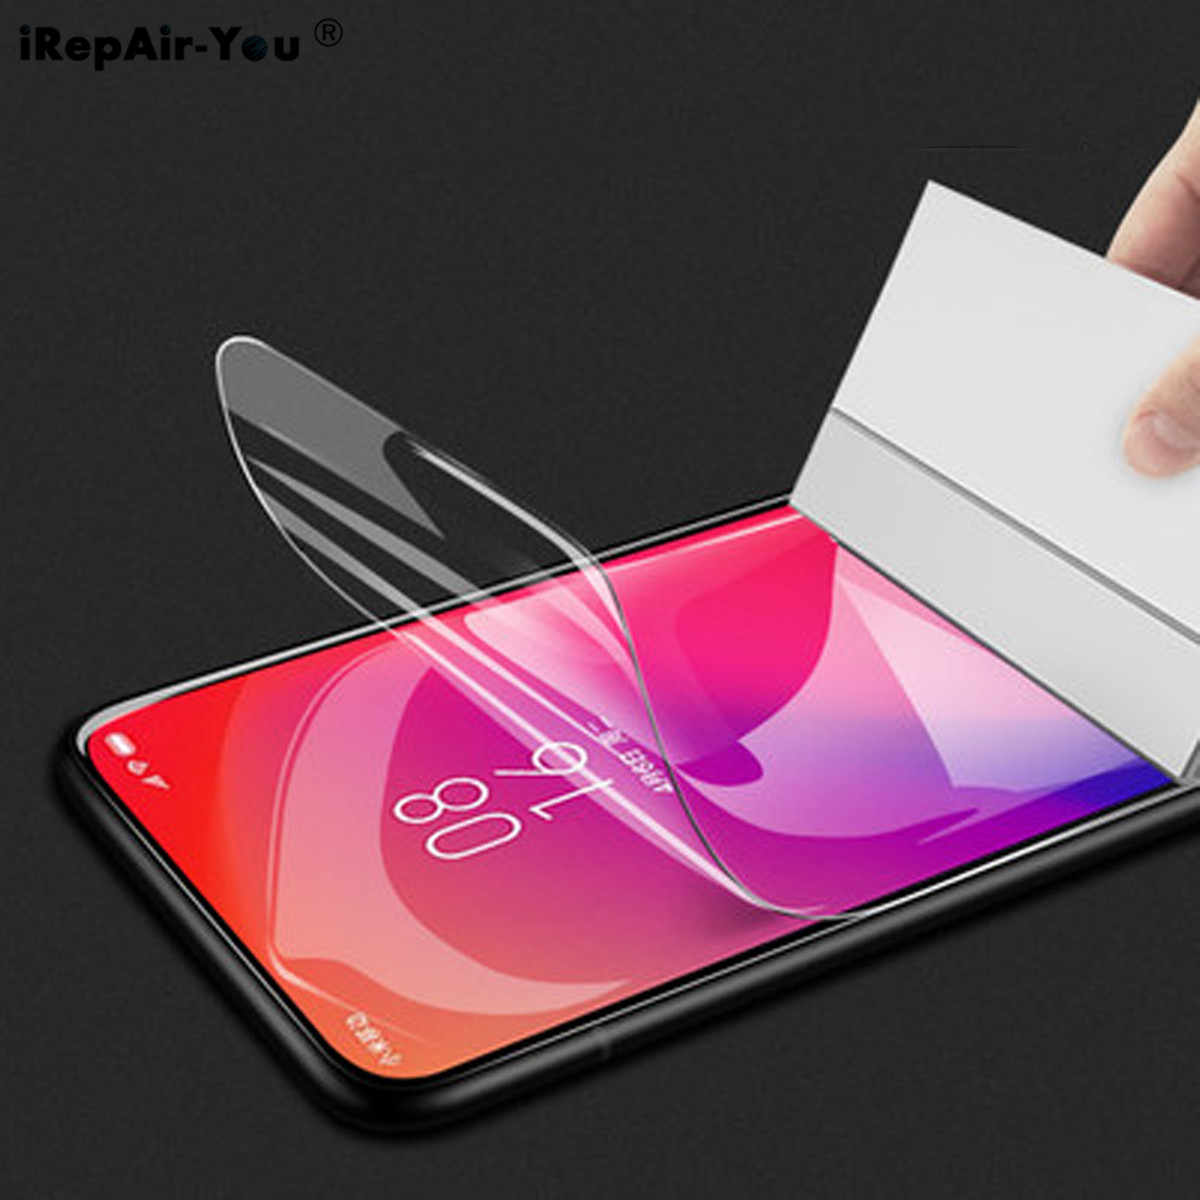 New 10D Nano Full Cover Hydrogel Film For Xiaomi Mi 9 SE 9t CC9 CC9e A3 Redmi K20 Pro Note 7 Soft TPU HD Screen Protective Film